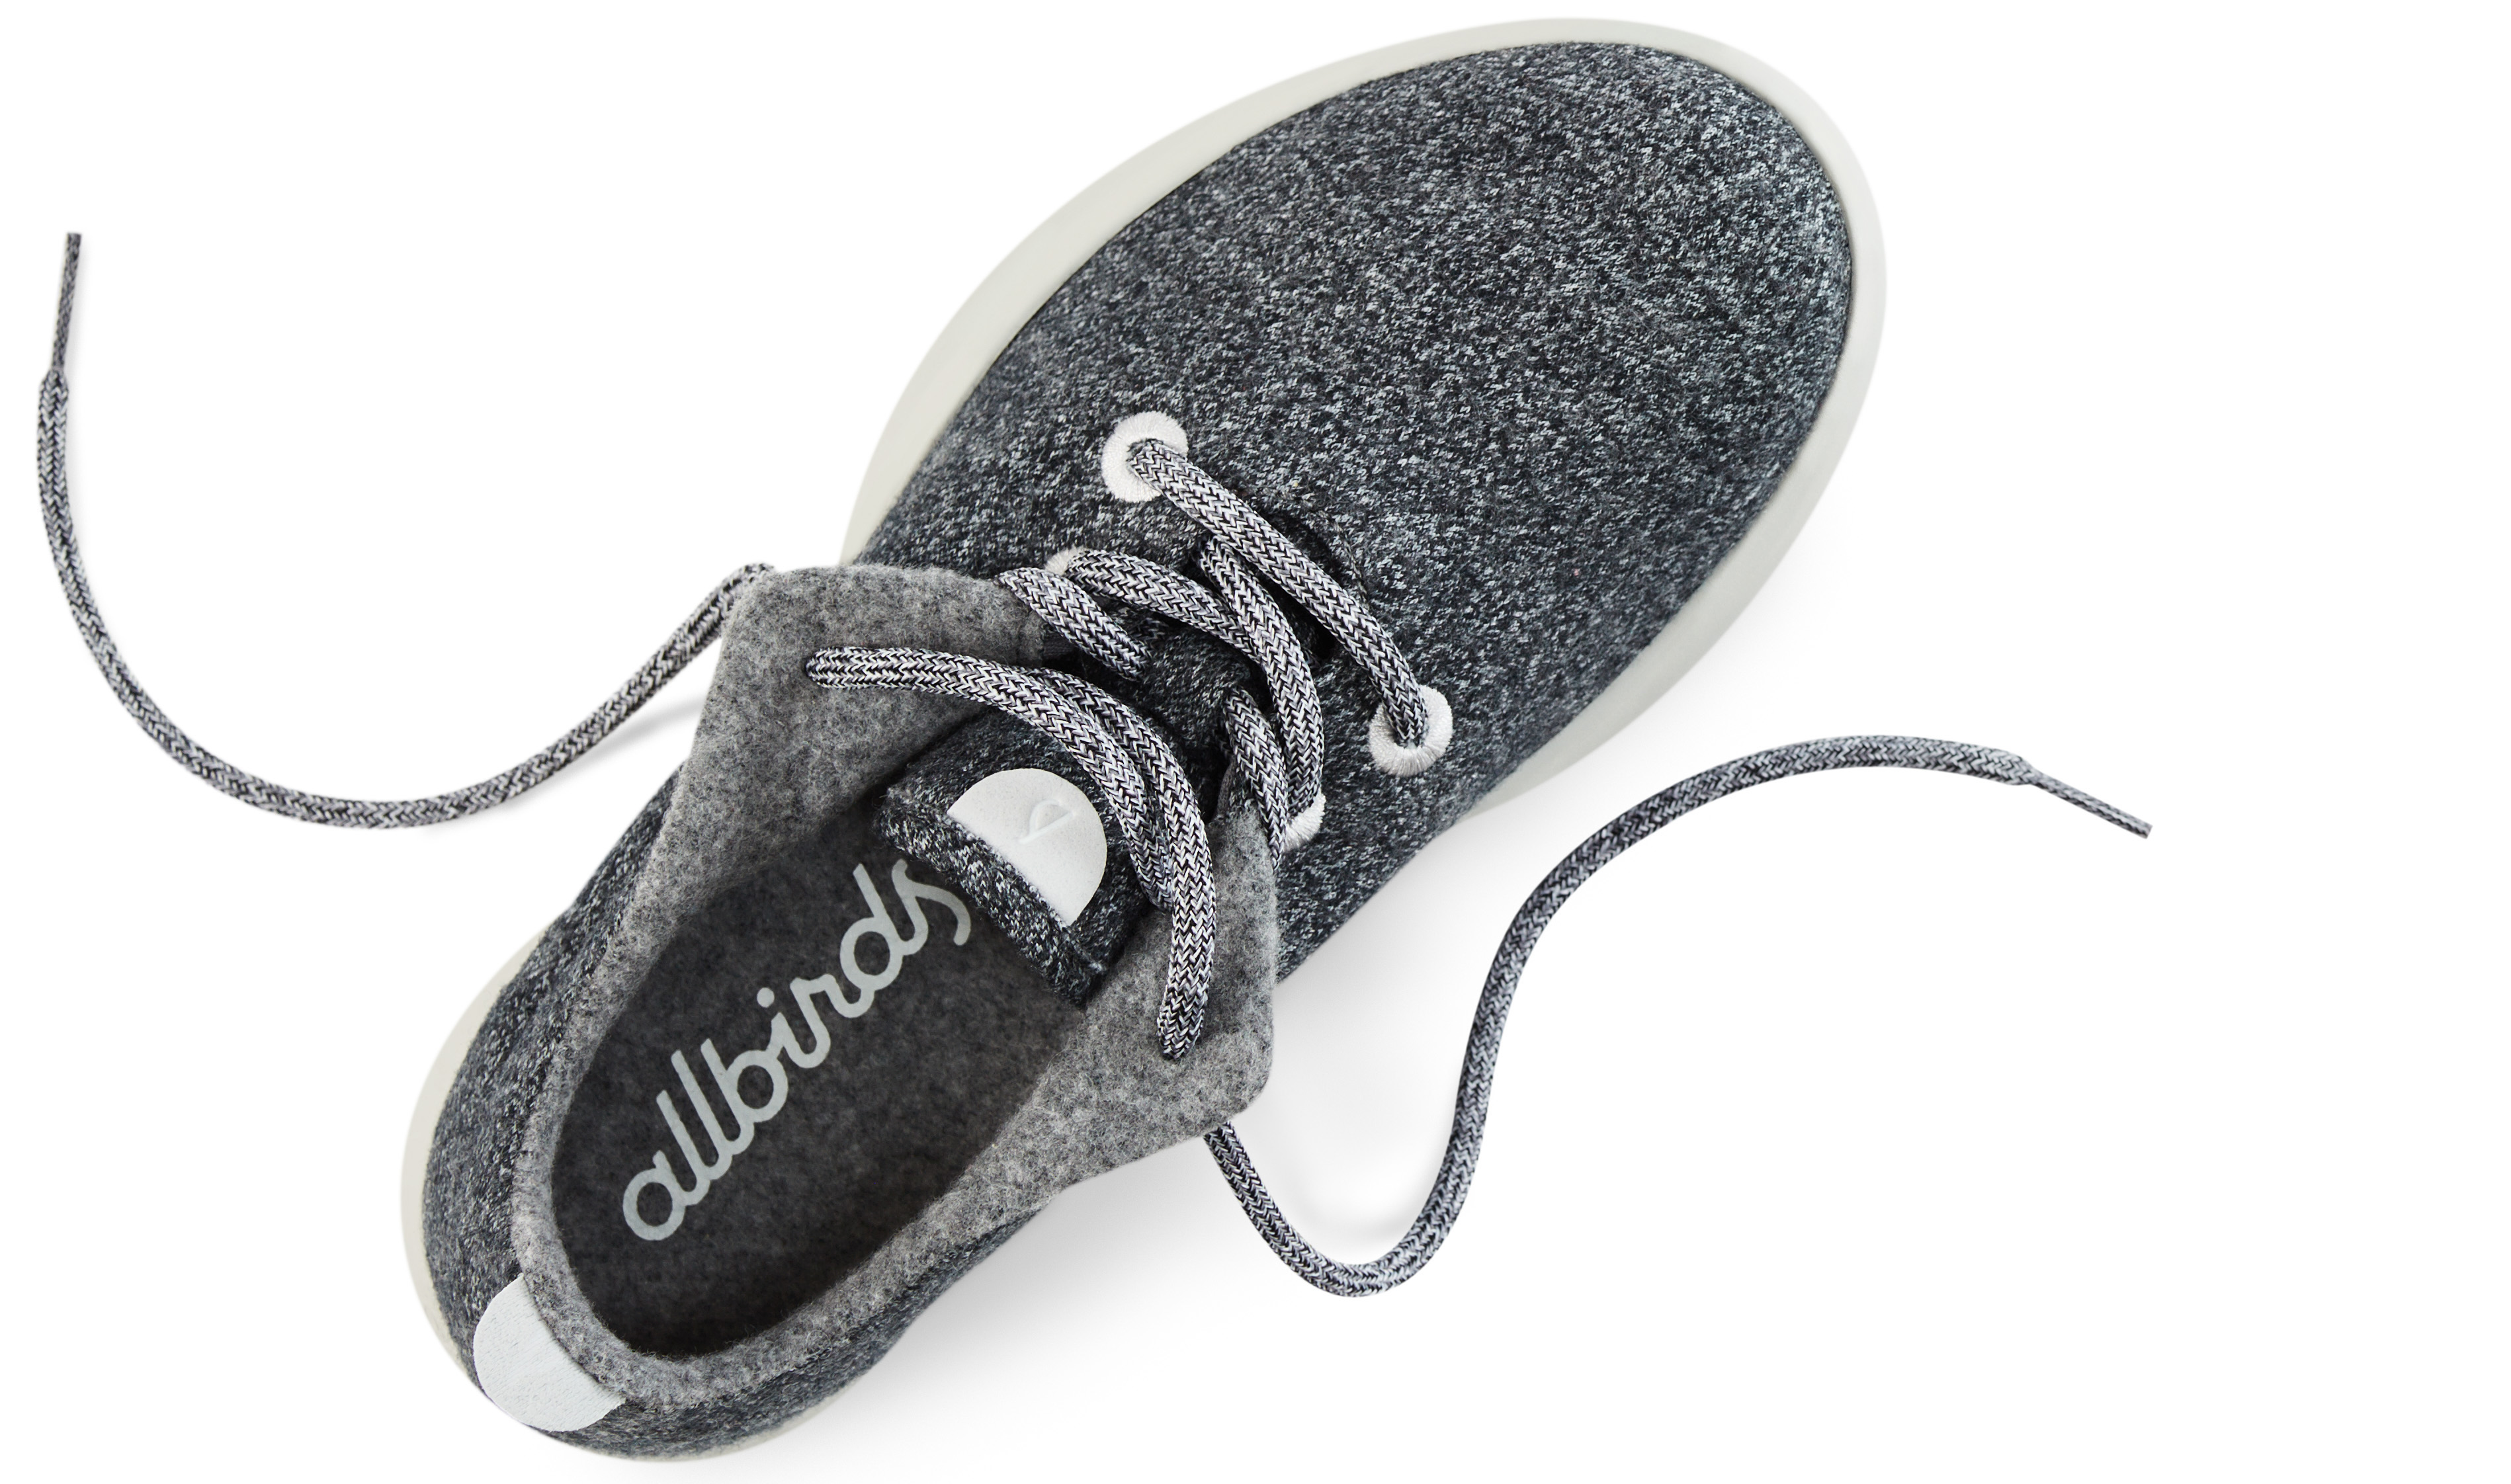 softest shoes ever